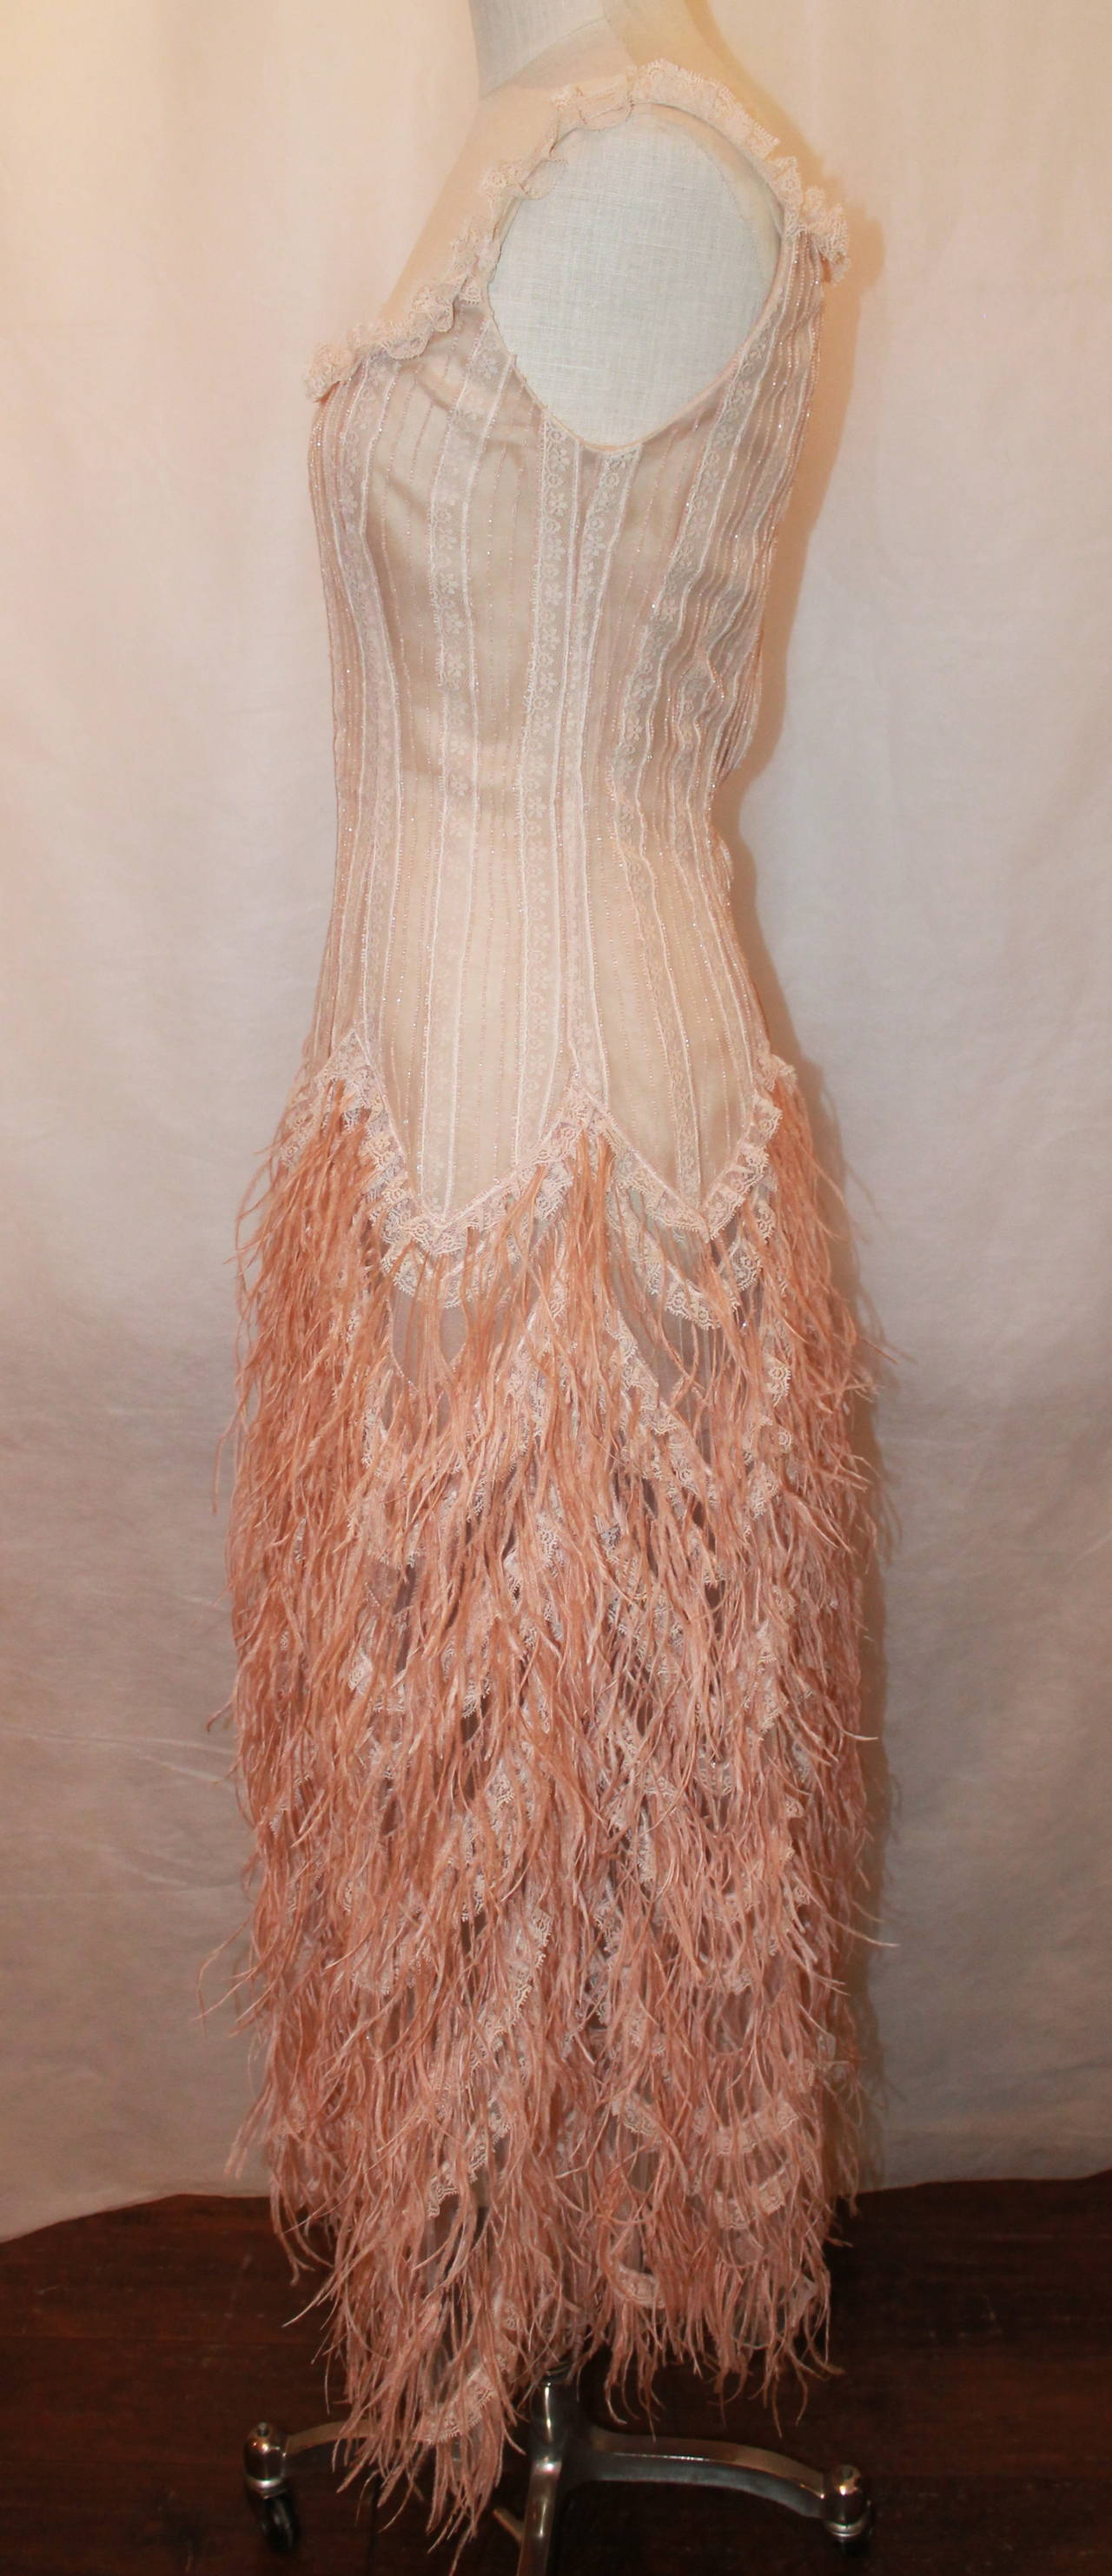 Oscar de la Renta Blush Lace Beaded Gown with Ostrich Feathers & Shawl - M 4